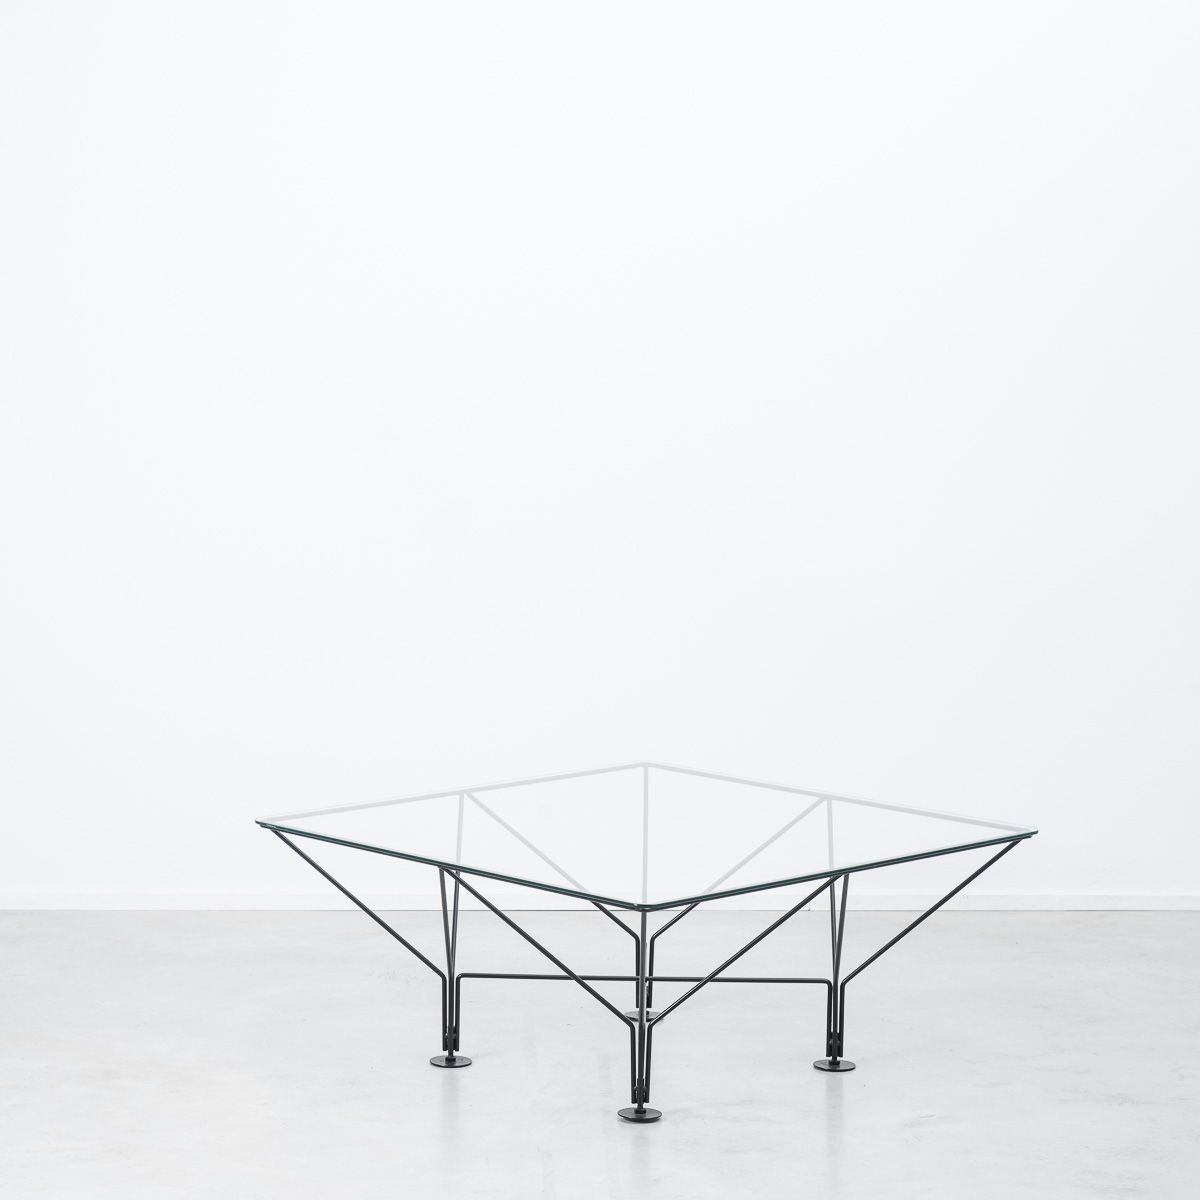 1980s Wire frame table attr. Paolo Piva | Béton Brut | Furniture ...